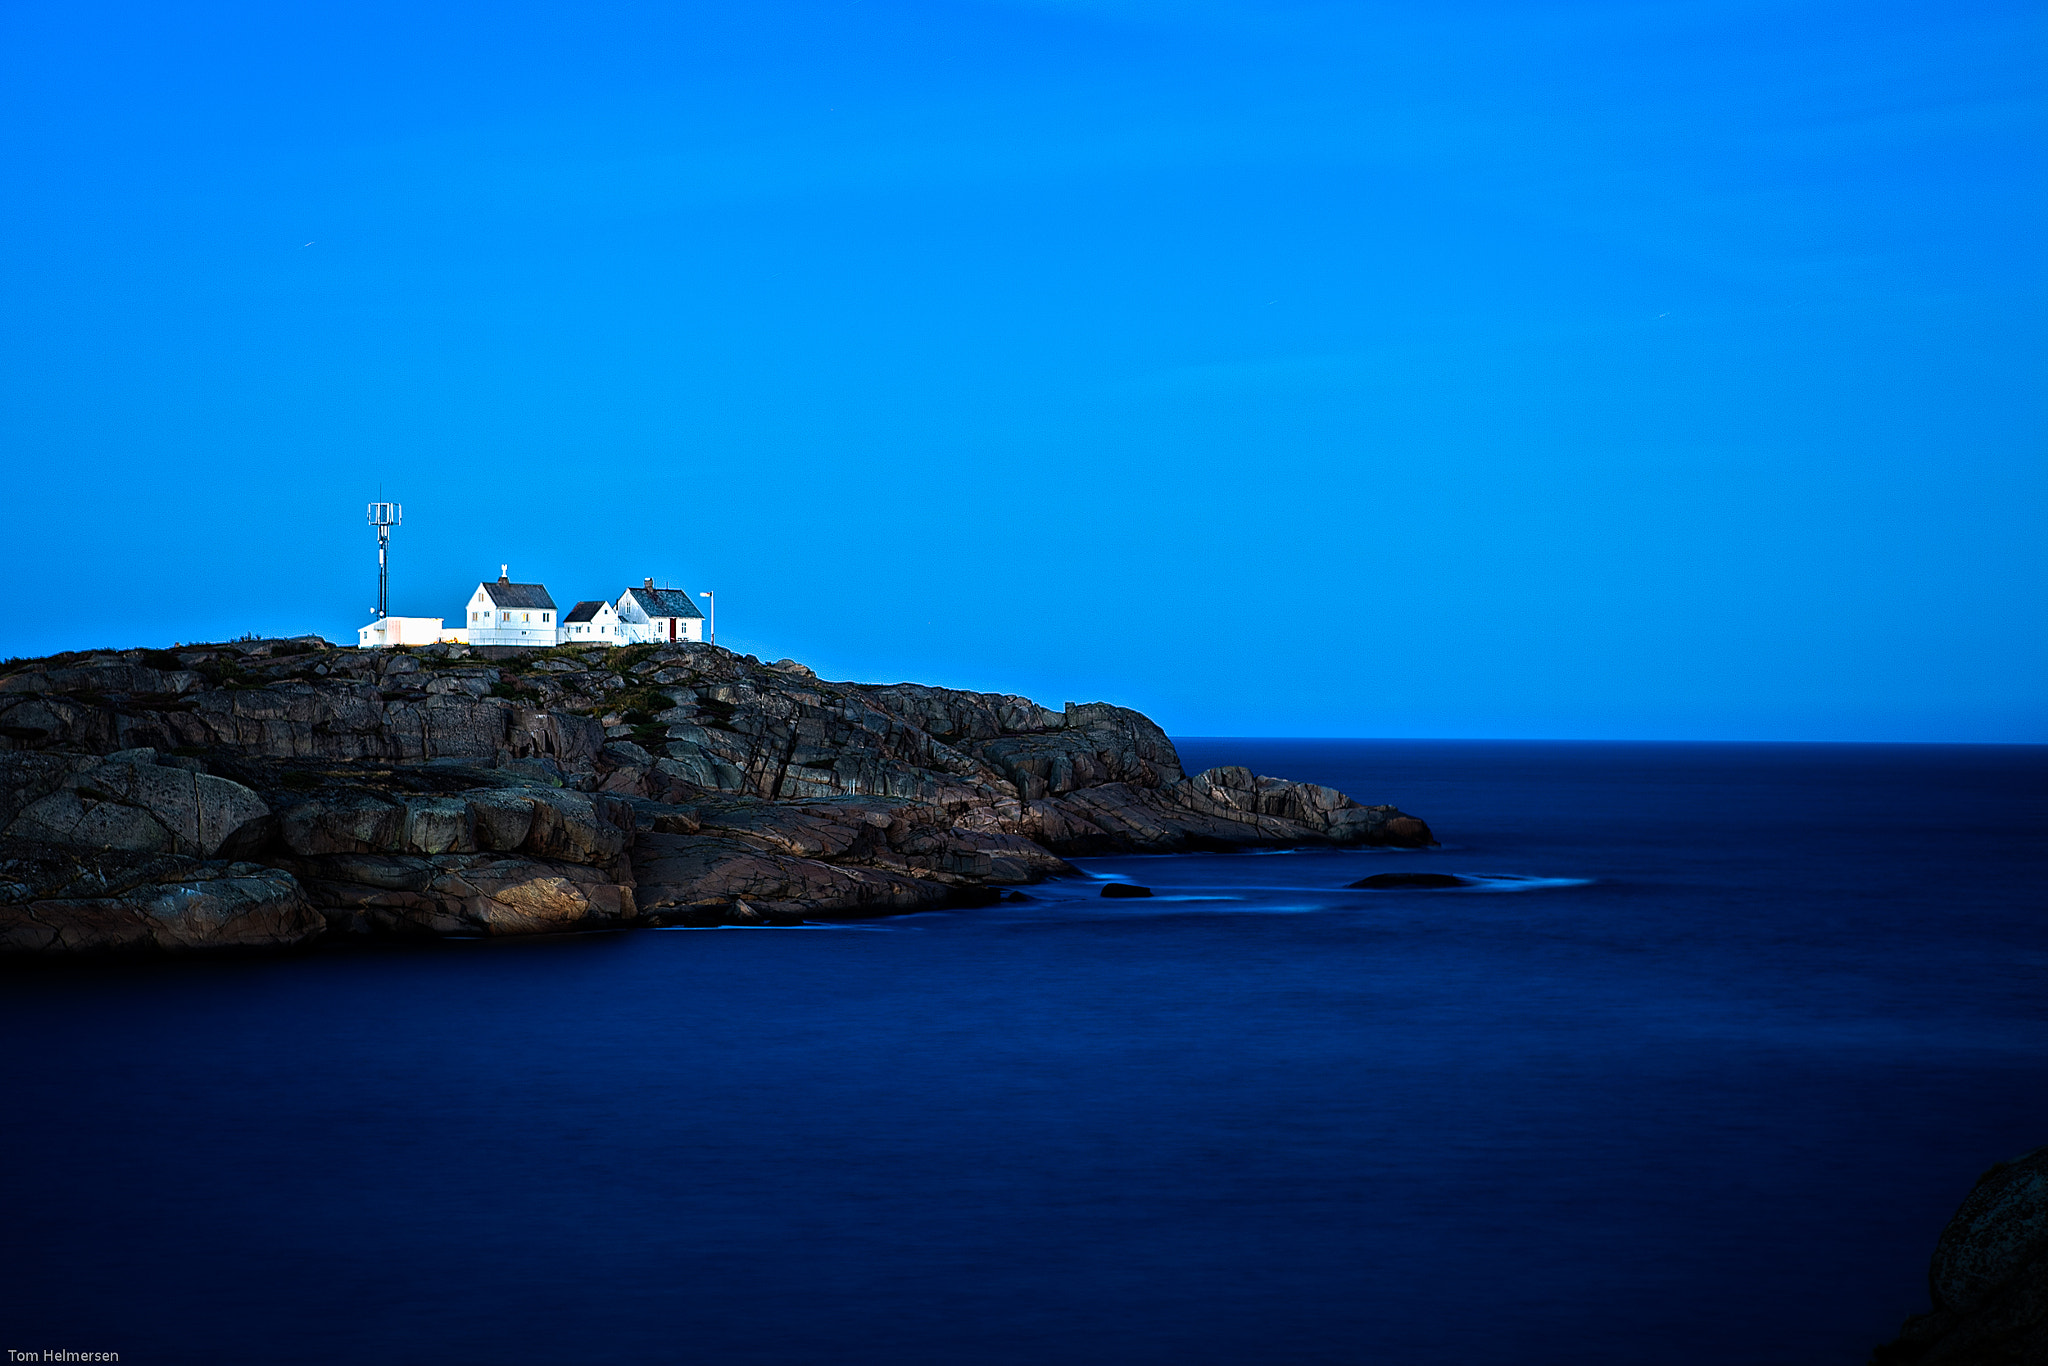 Photograph Lighthouse at night by Tom Helmersen on 500px